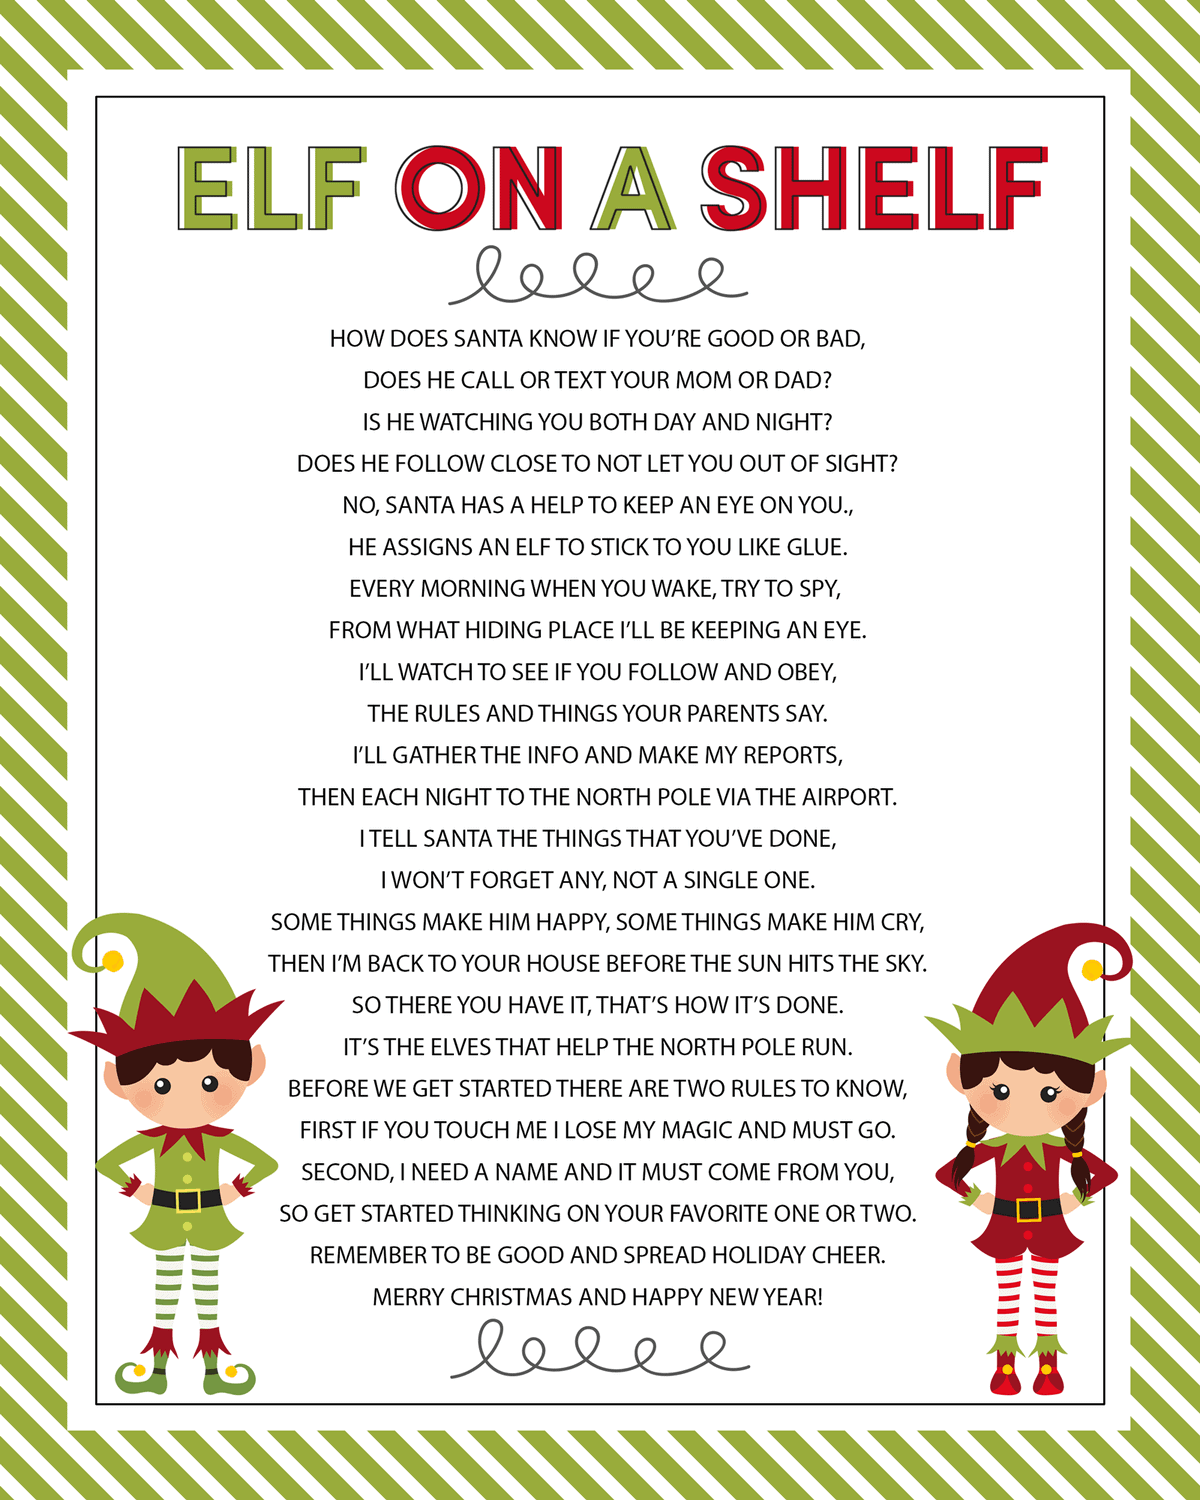 photograph relating to Elf on the Shelf Printable titled Elf upon the Shelf Tale - Free of charge Printable Poem - Lil Luna